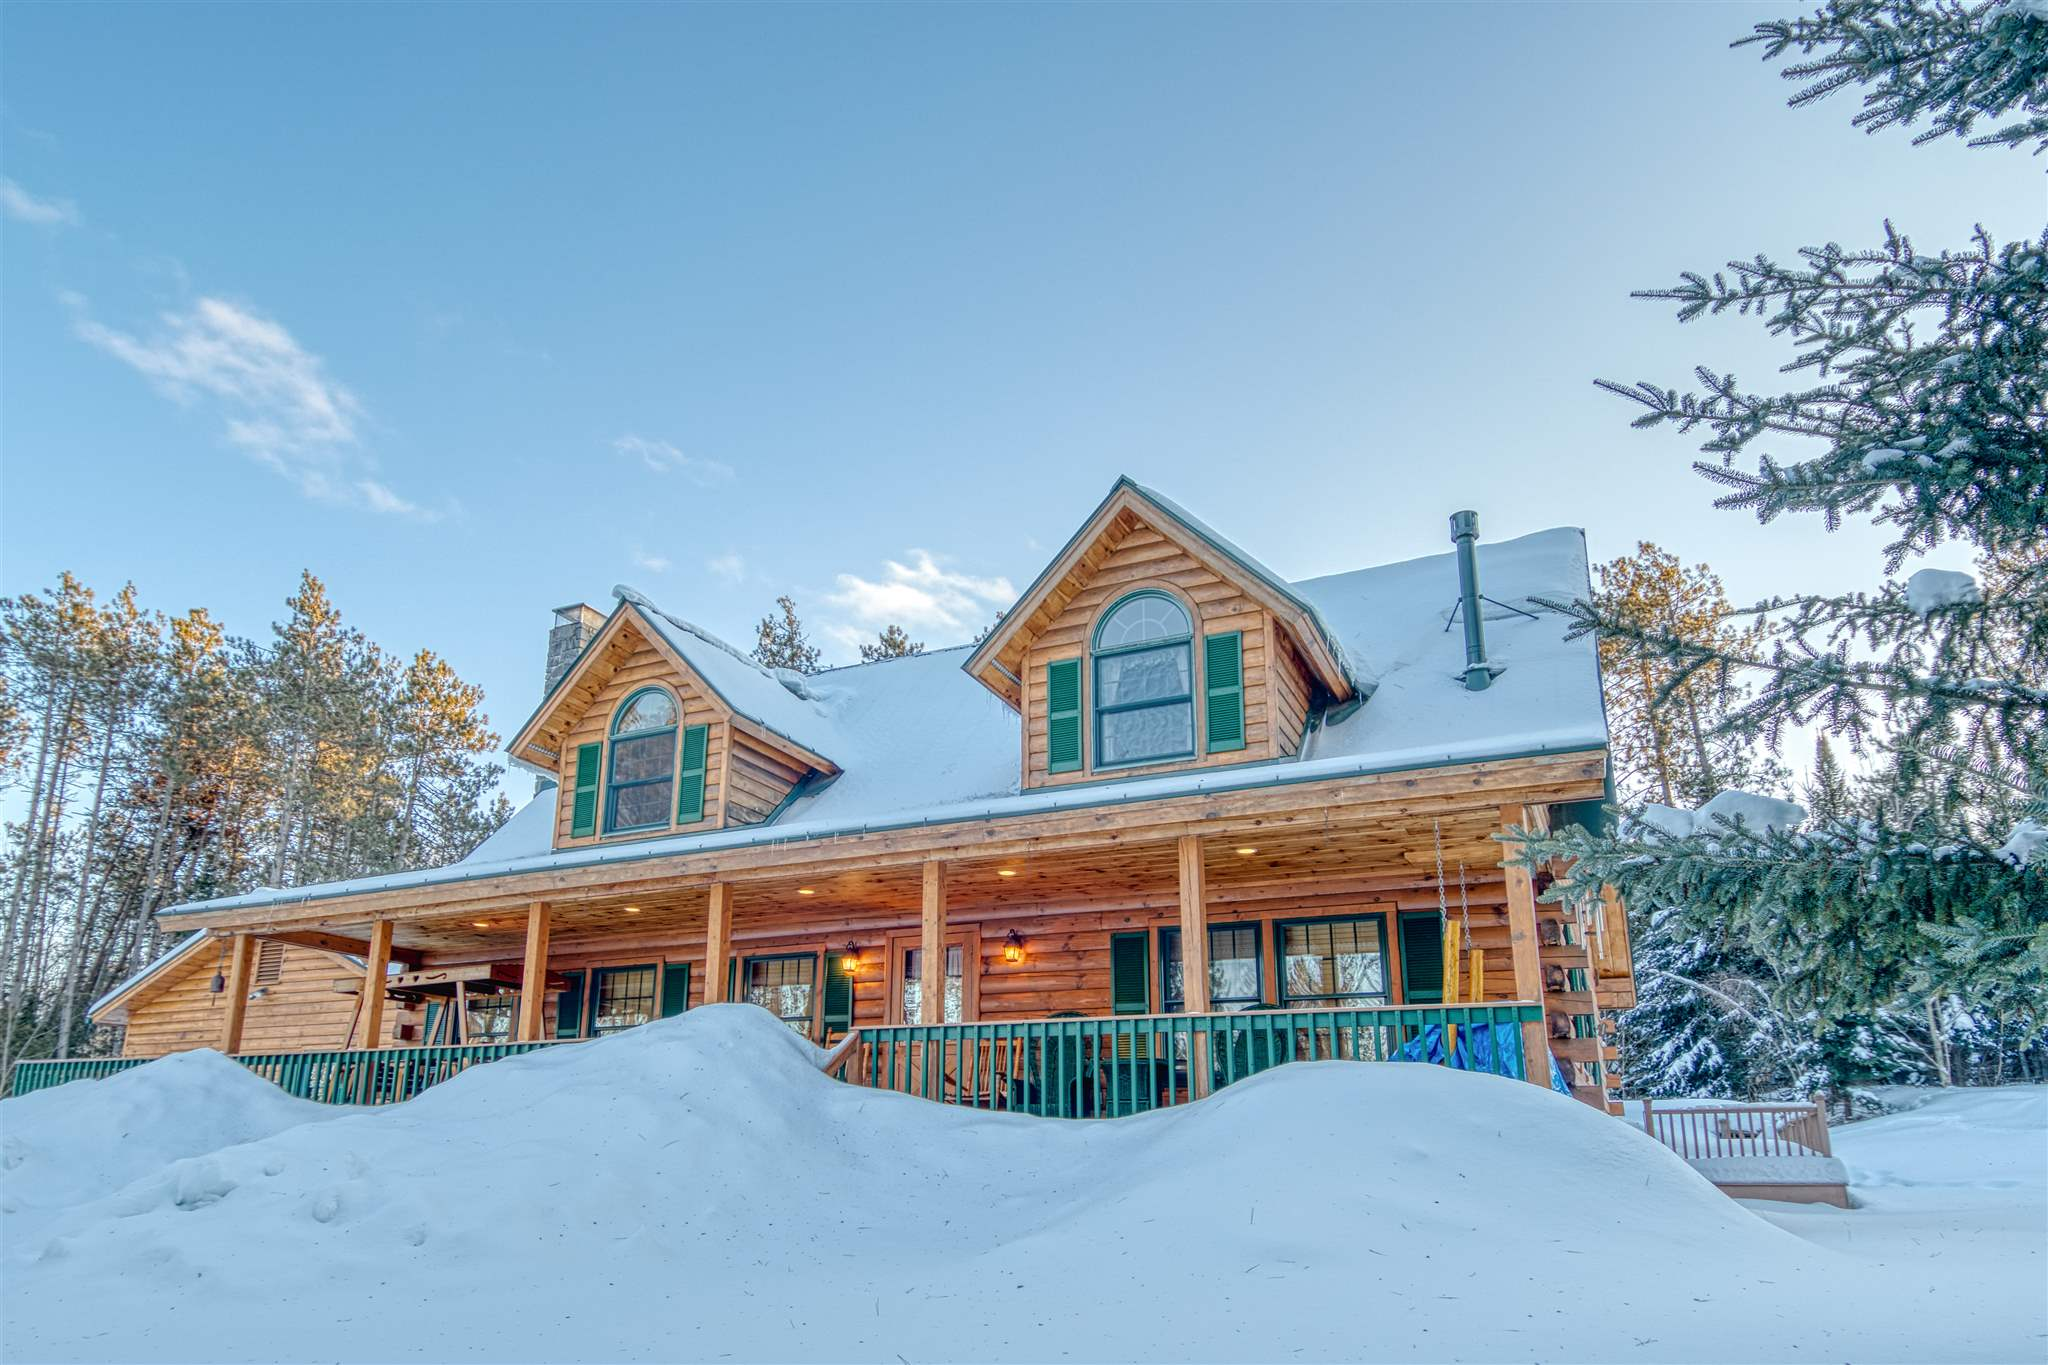 Barre Town Vermont Homes For Sale, 05641. Barre, VT Real Estate Agent